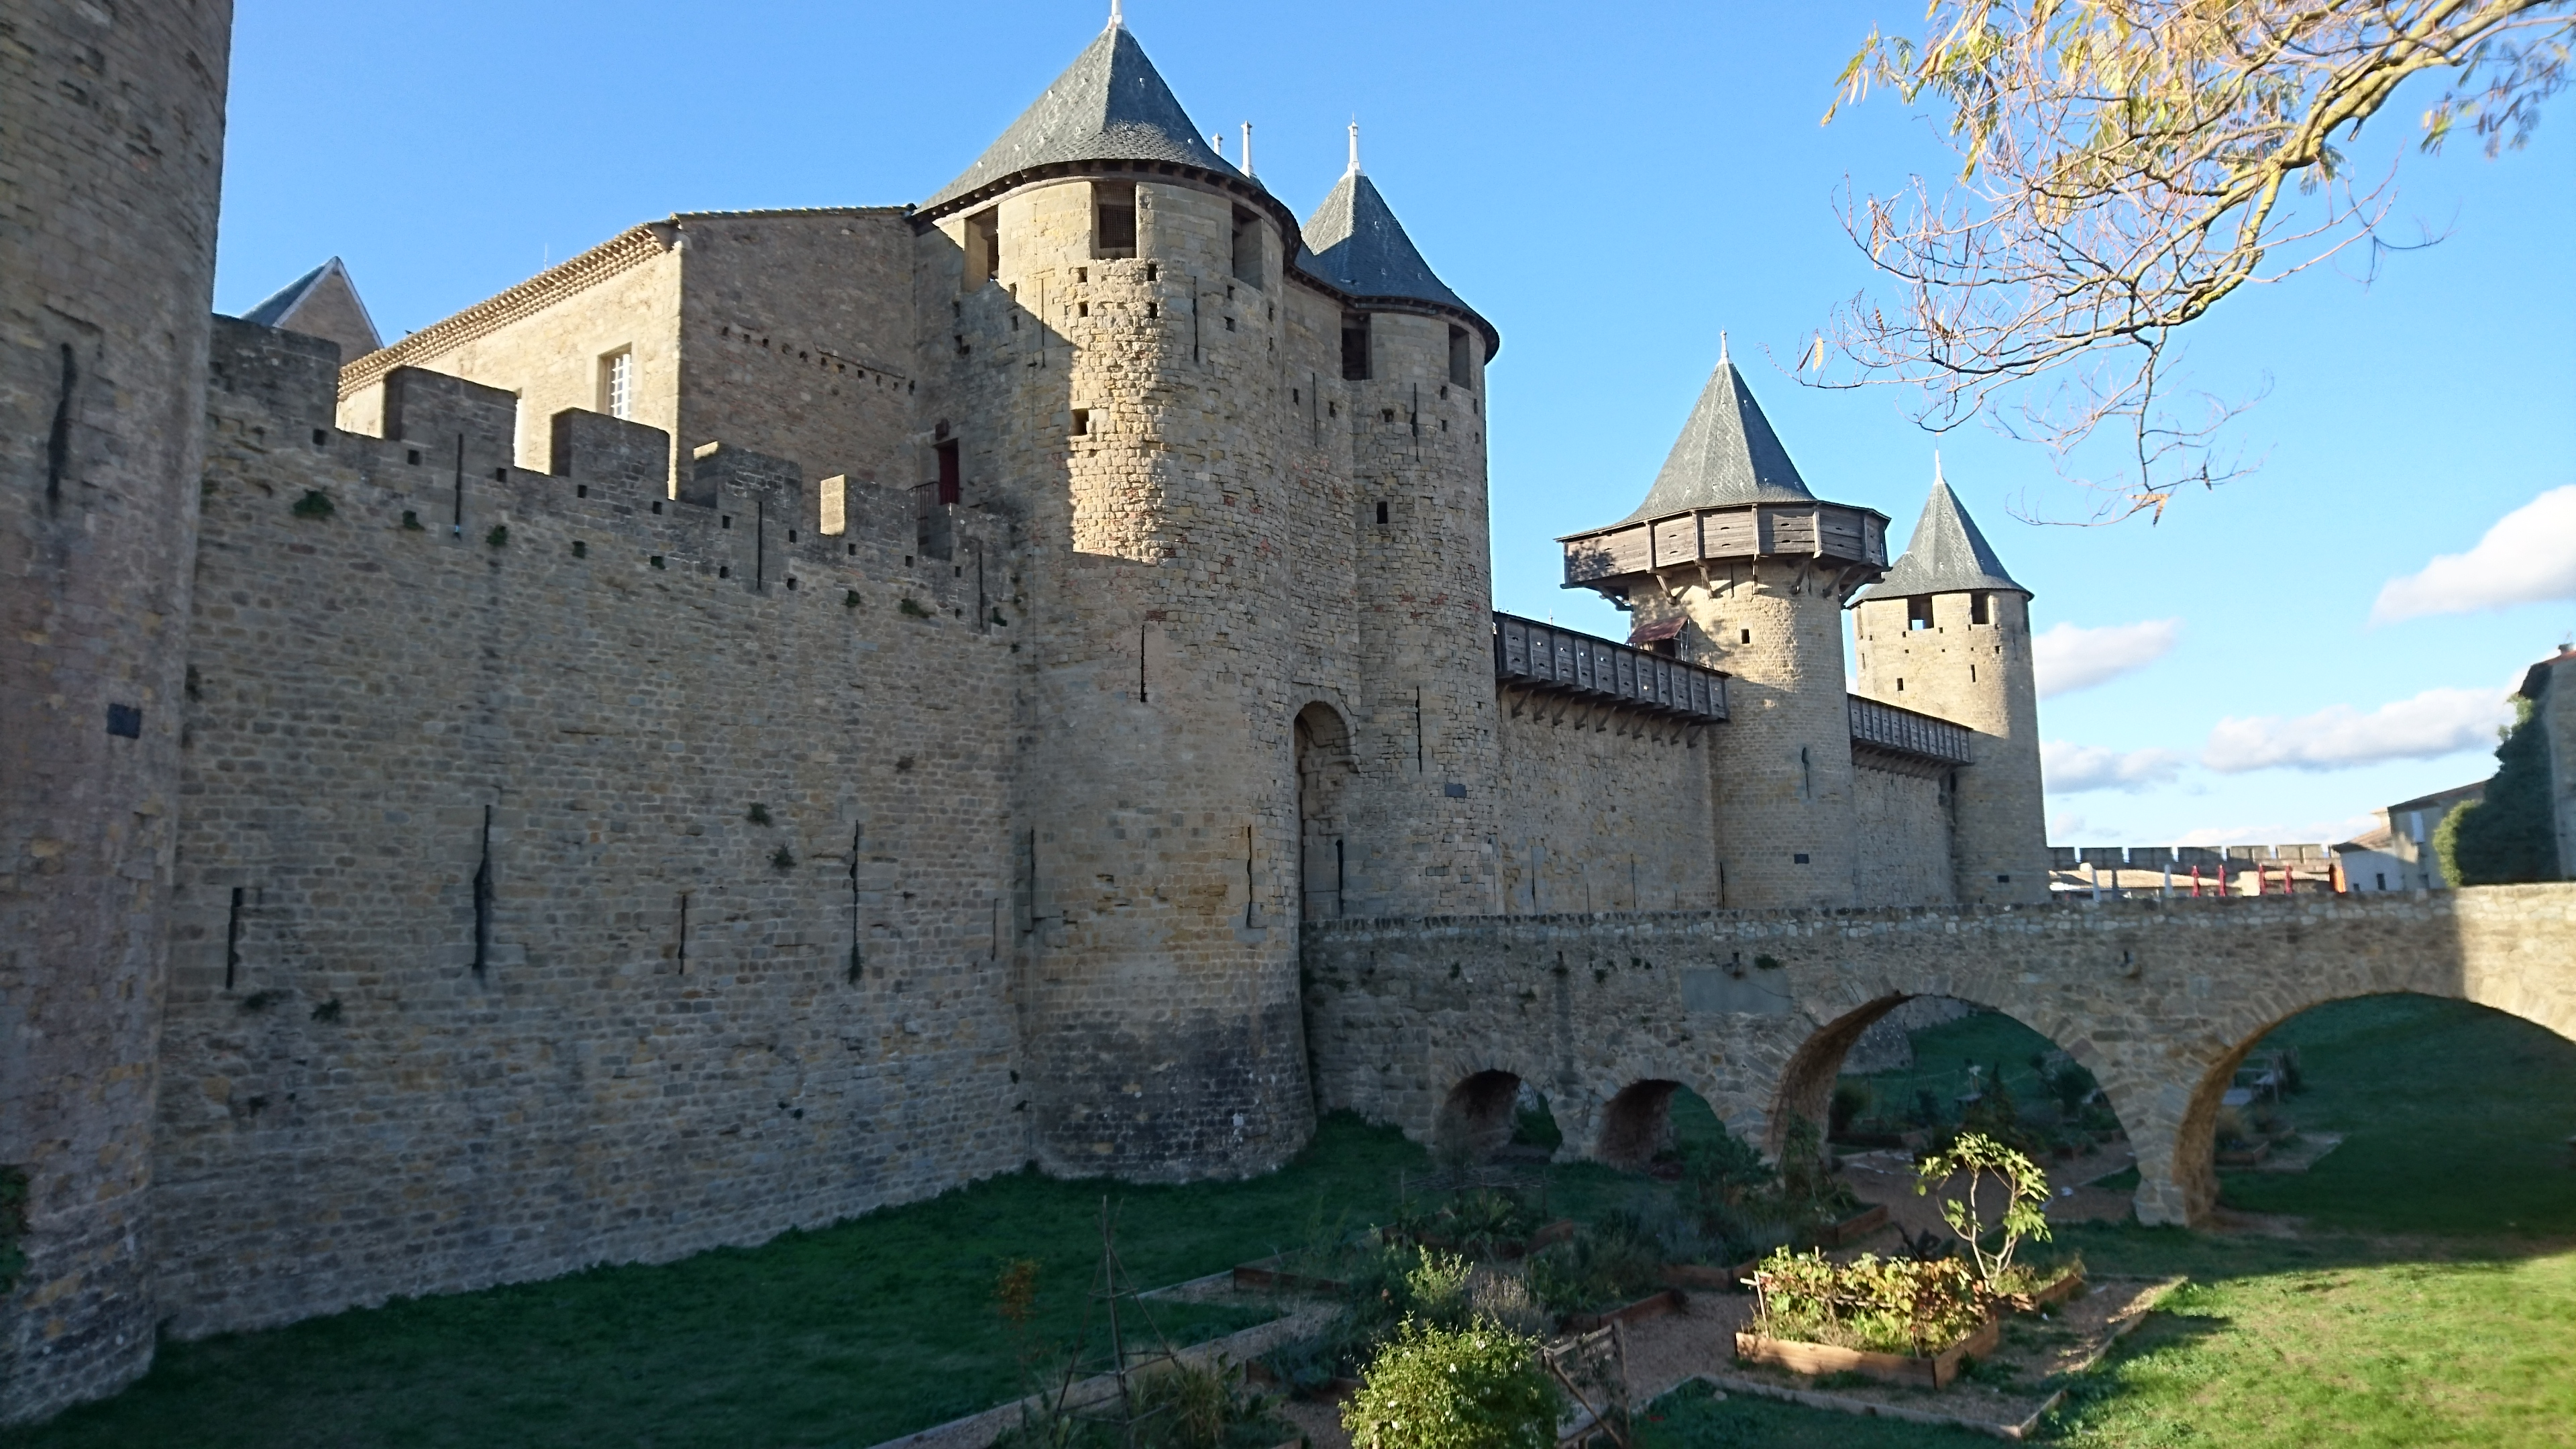 What to see at Rennes le chateau and around